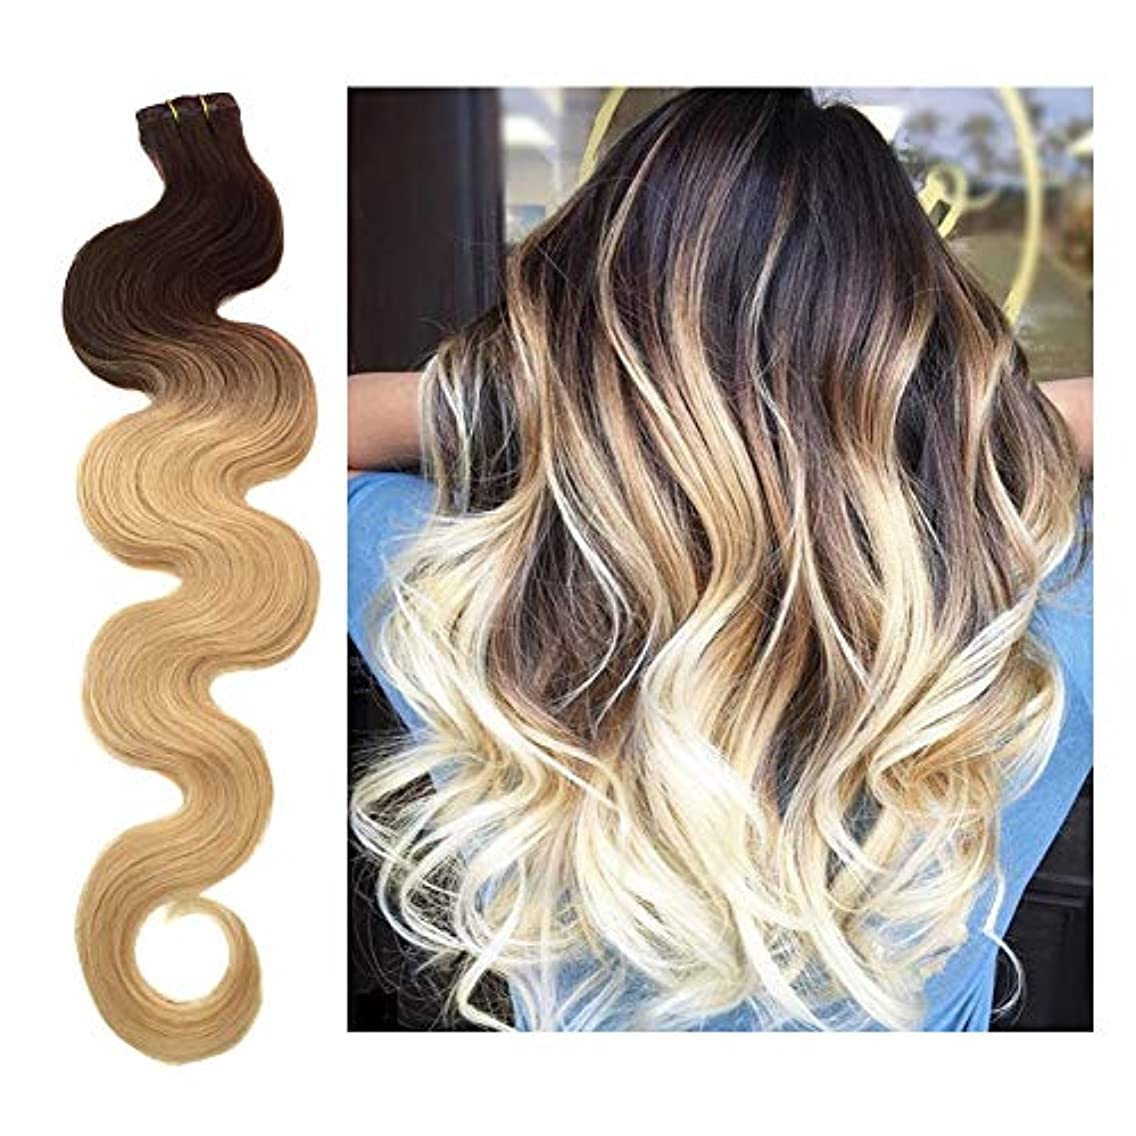 22 Inch Skin Weft Hair Extensions Tape in Hair Extensions Human Hair Body Wave #2T613 Dark Brown Fading to Bleached Blonde Remy Hair Extensions Curly Glue in 20PCS 60G